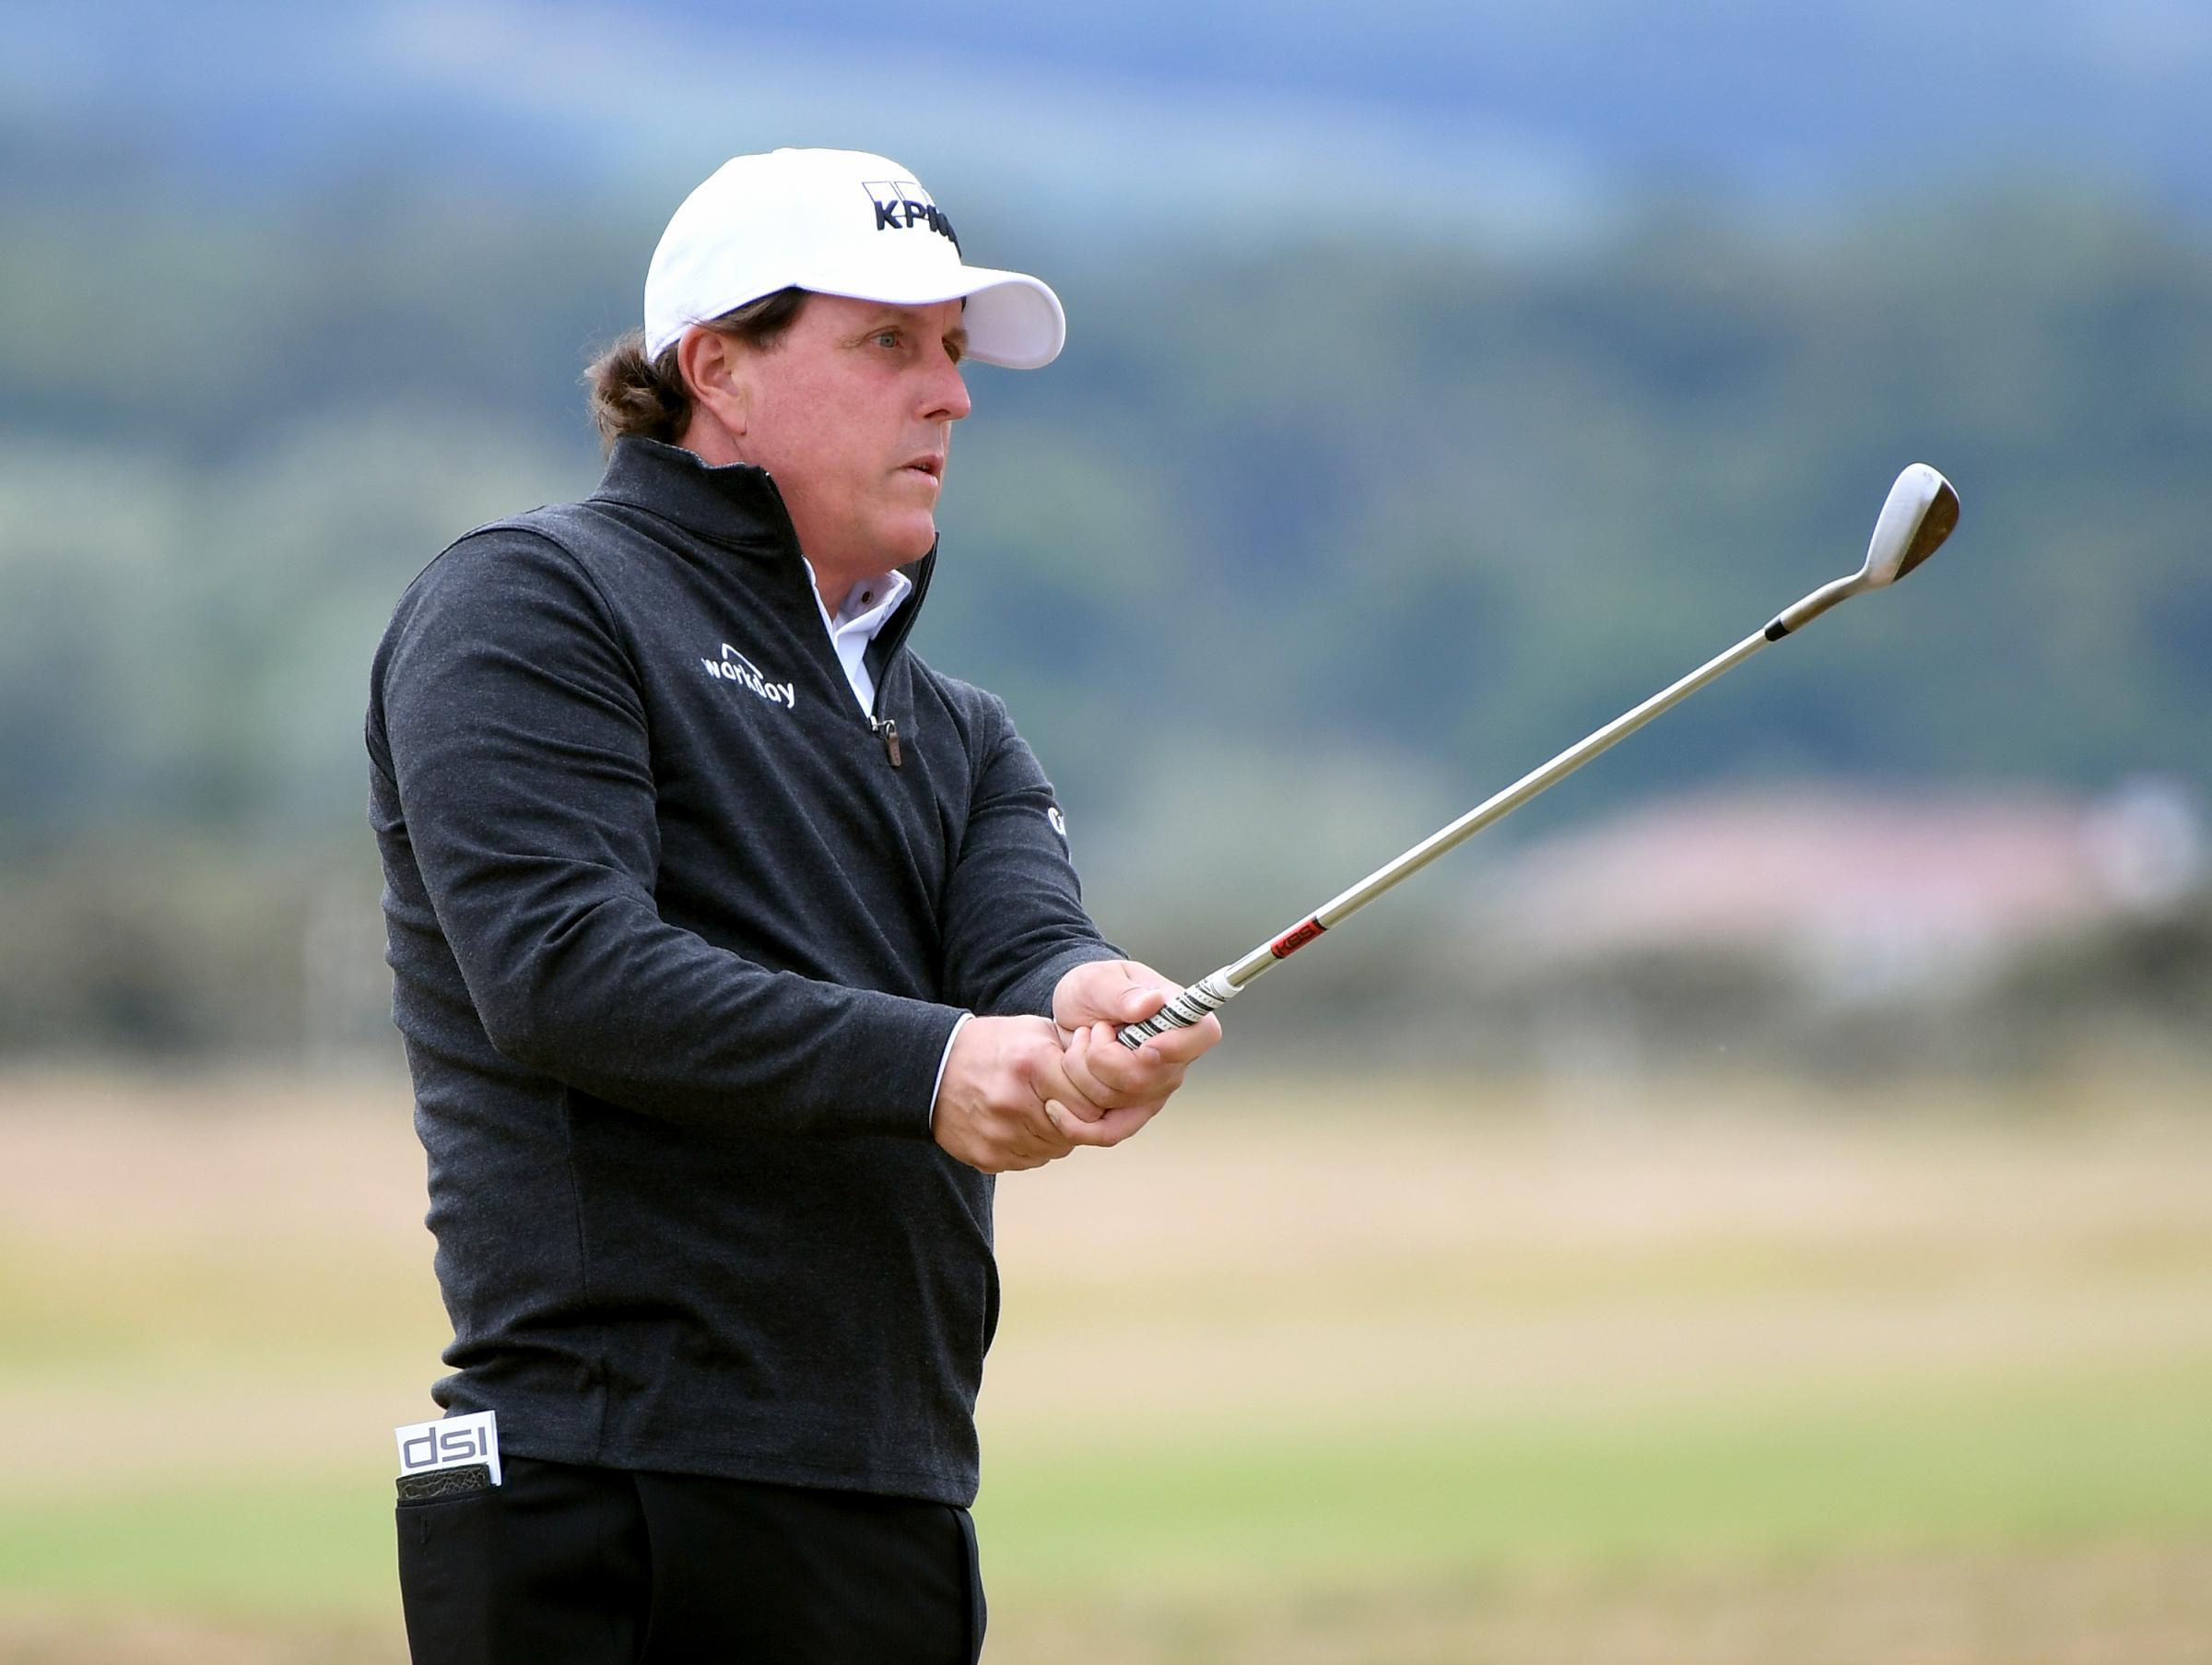 Big name: Phil Mickelson is one of the star attractions at the Scottish Open (Picture: Getty)